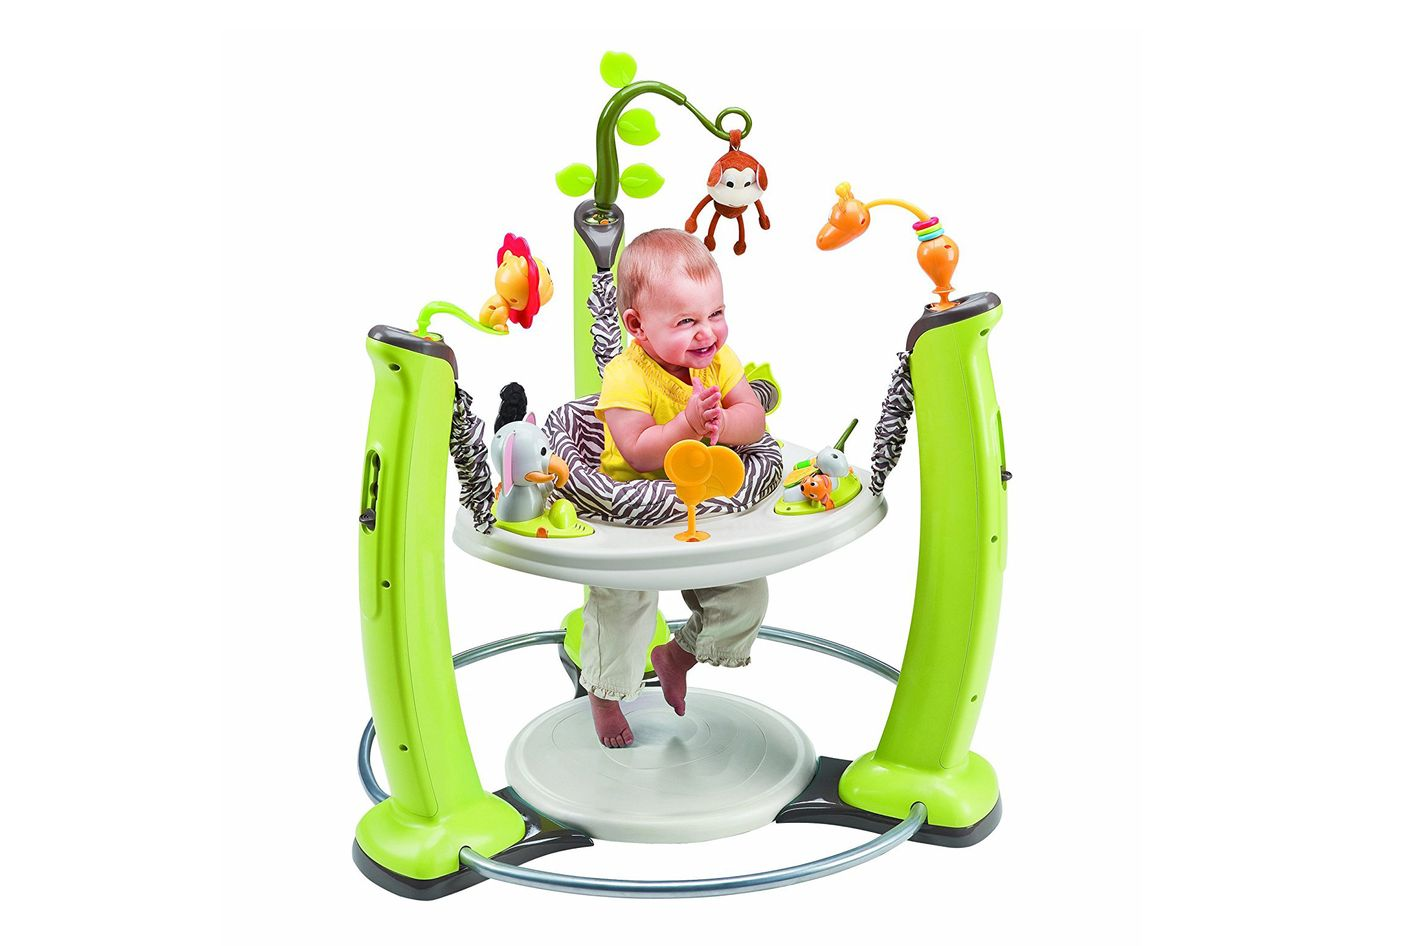 https://pixel.nymag.com/imgs/daily/strategist/2017/05/16/baby-bouncers/Adjustable-Baby-Bouncer.w710.h473.2x.jpg